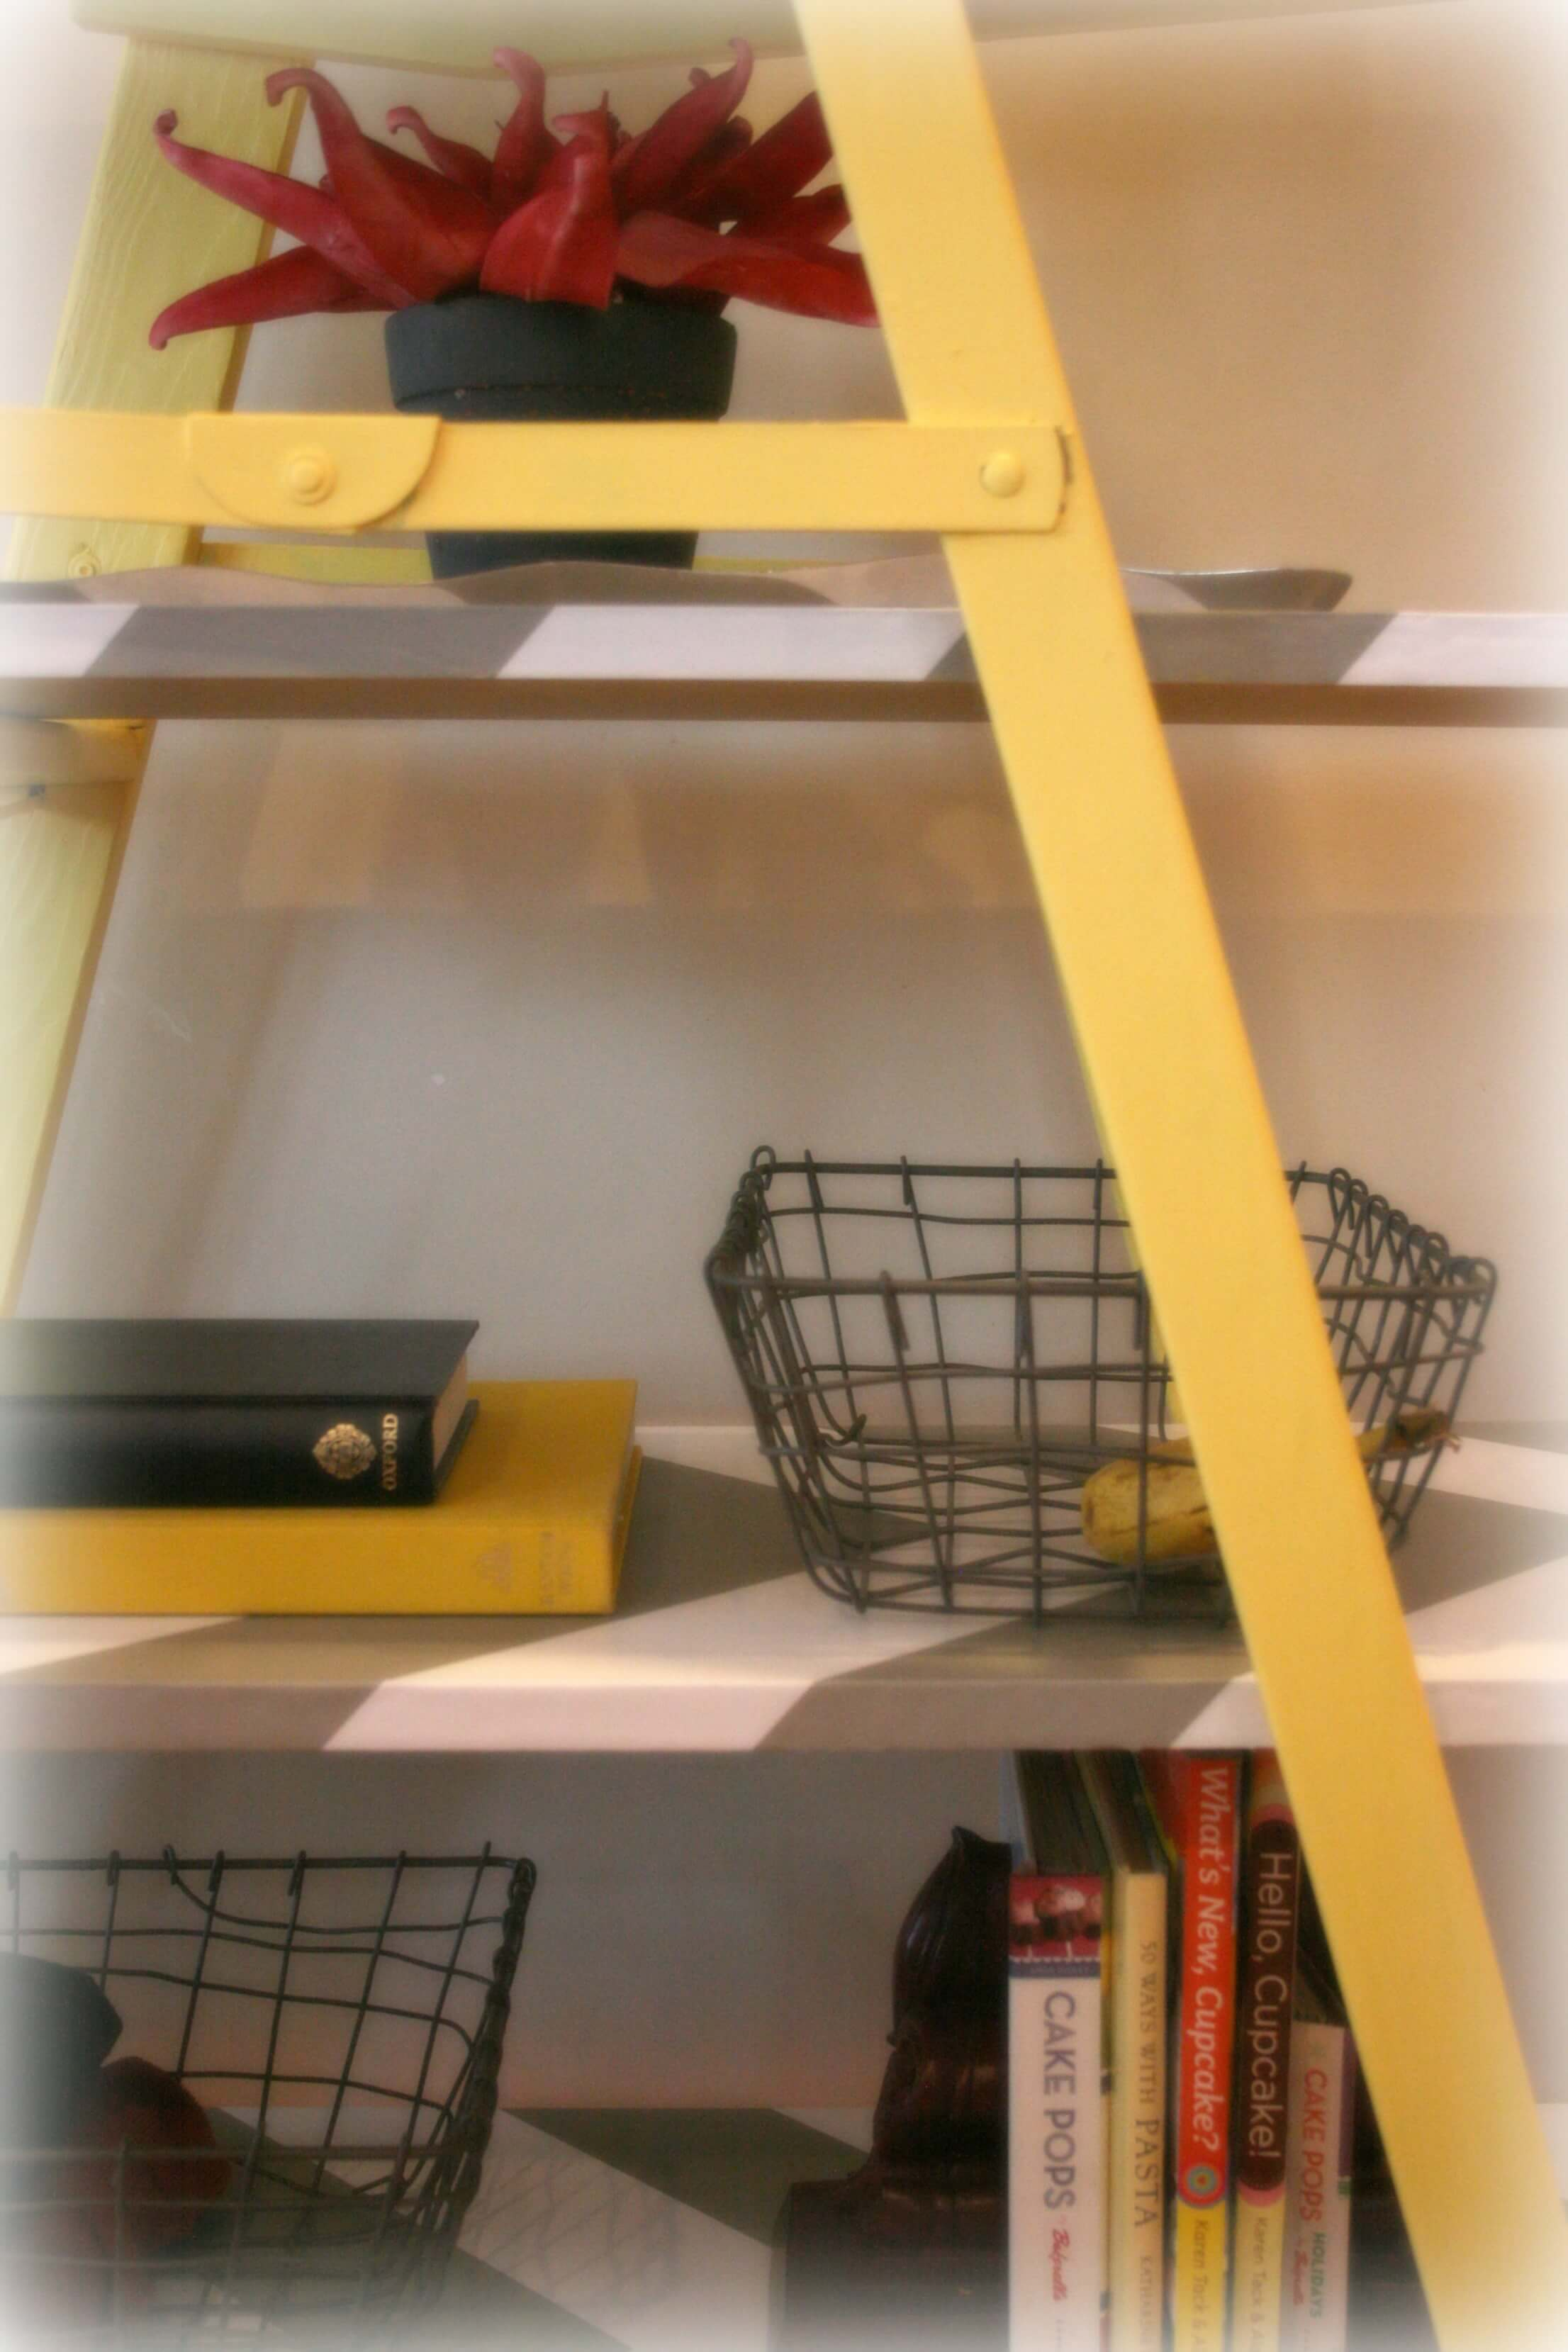 Close up view of the shelving unit storing baskets, books and decorative items